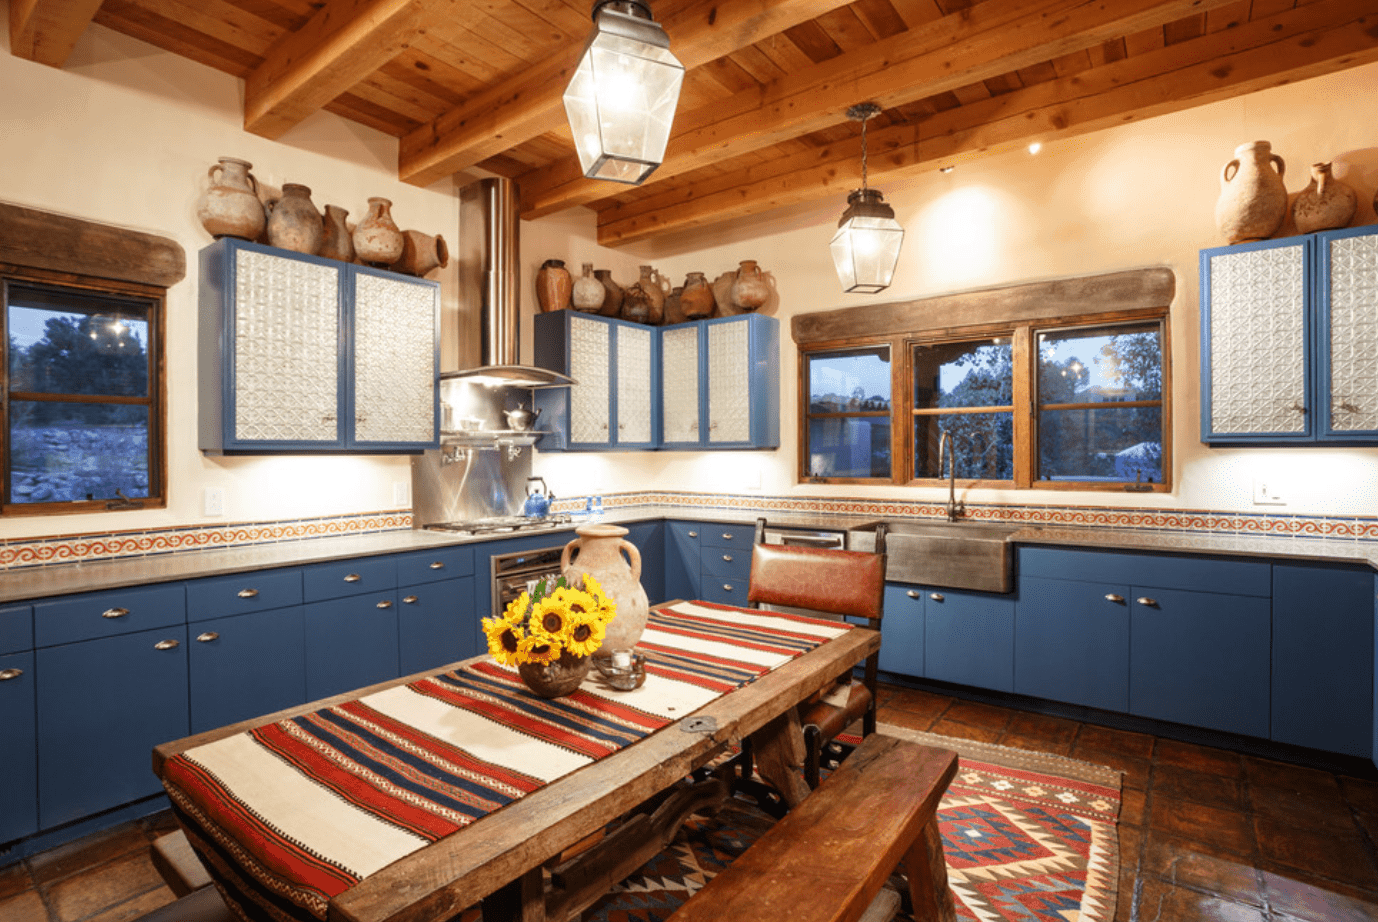 kitchen renovation ideas with added various | 50 Southwestern Kitchen Ideas for 2019